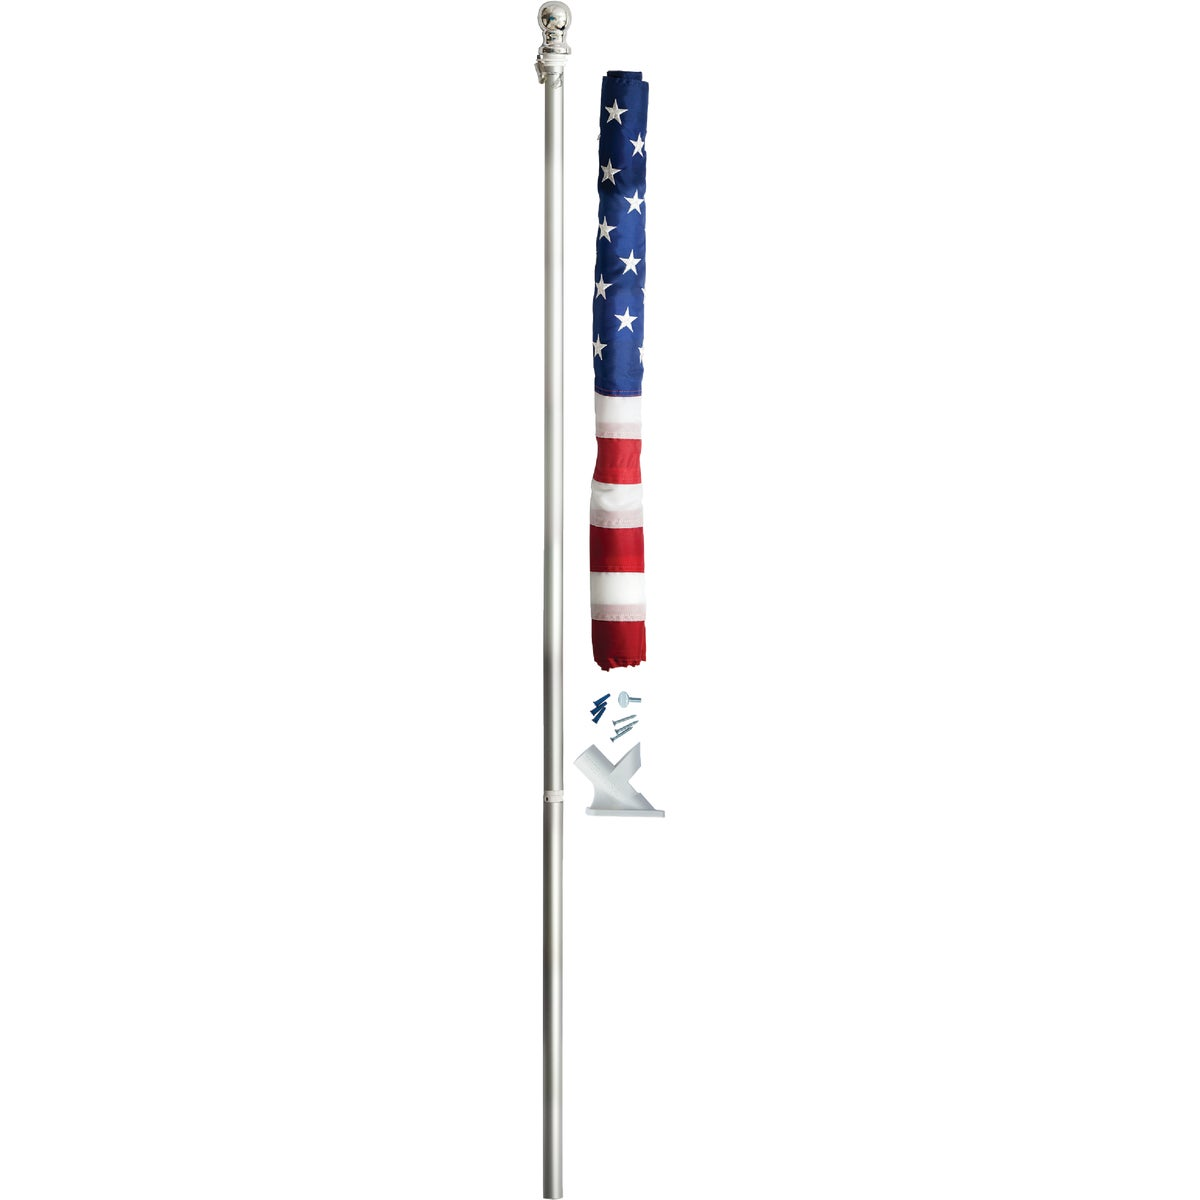 SPINNER POLE FLAG KIT